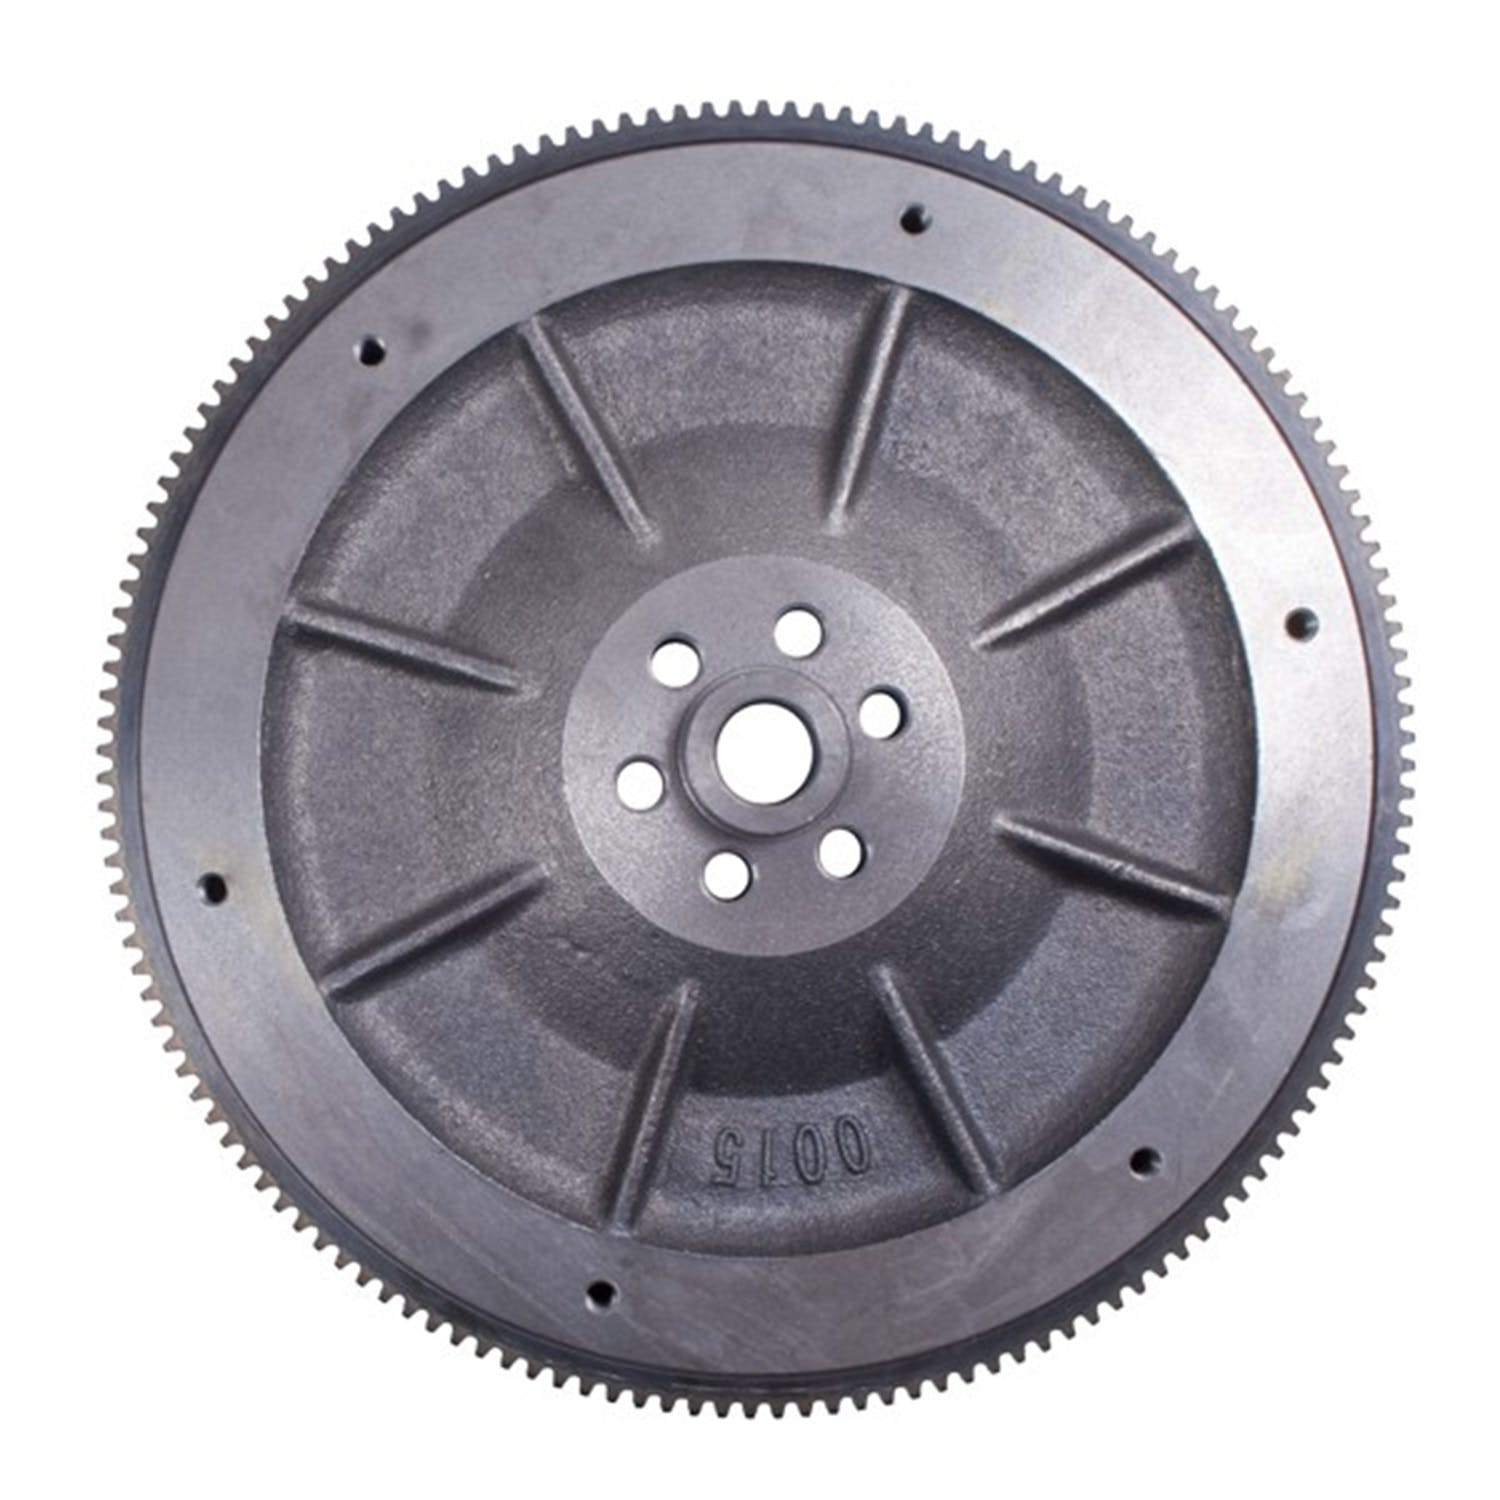 Omix-Ada 16912.06 Manual Transmission Flywheel Replacement Parts ...